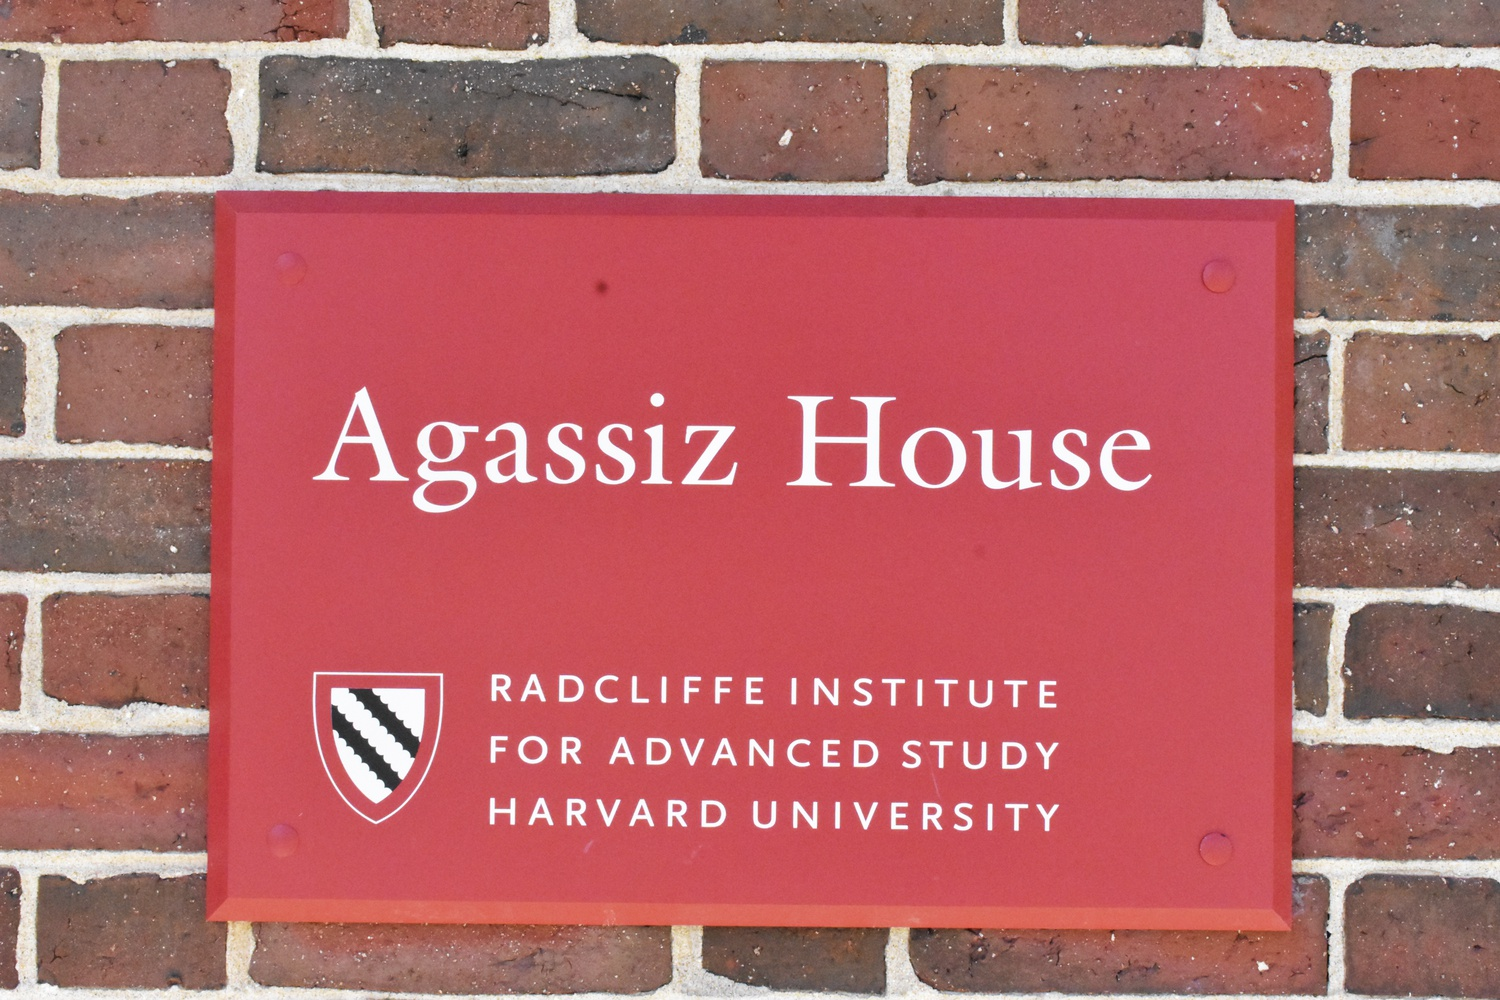 Several buildings on campus, including Agassiz House in Radcliffe Yard, bear the Agassiz name.